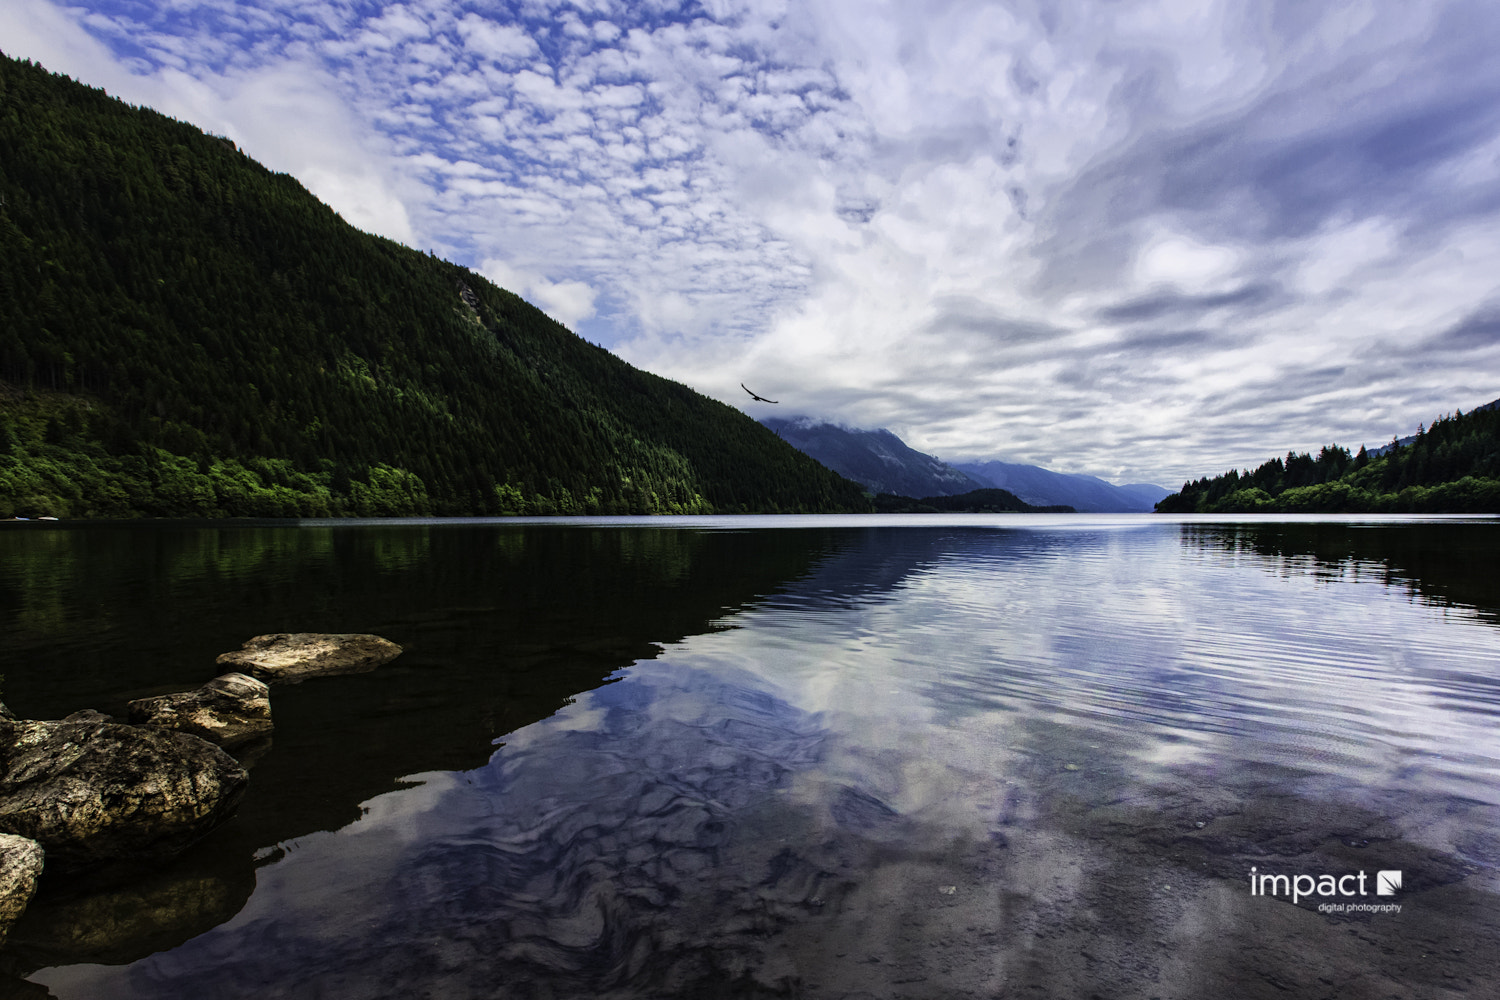 Photograph Lake Cowichan by Mike Thompson on 500px